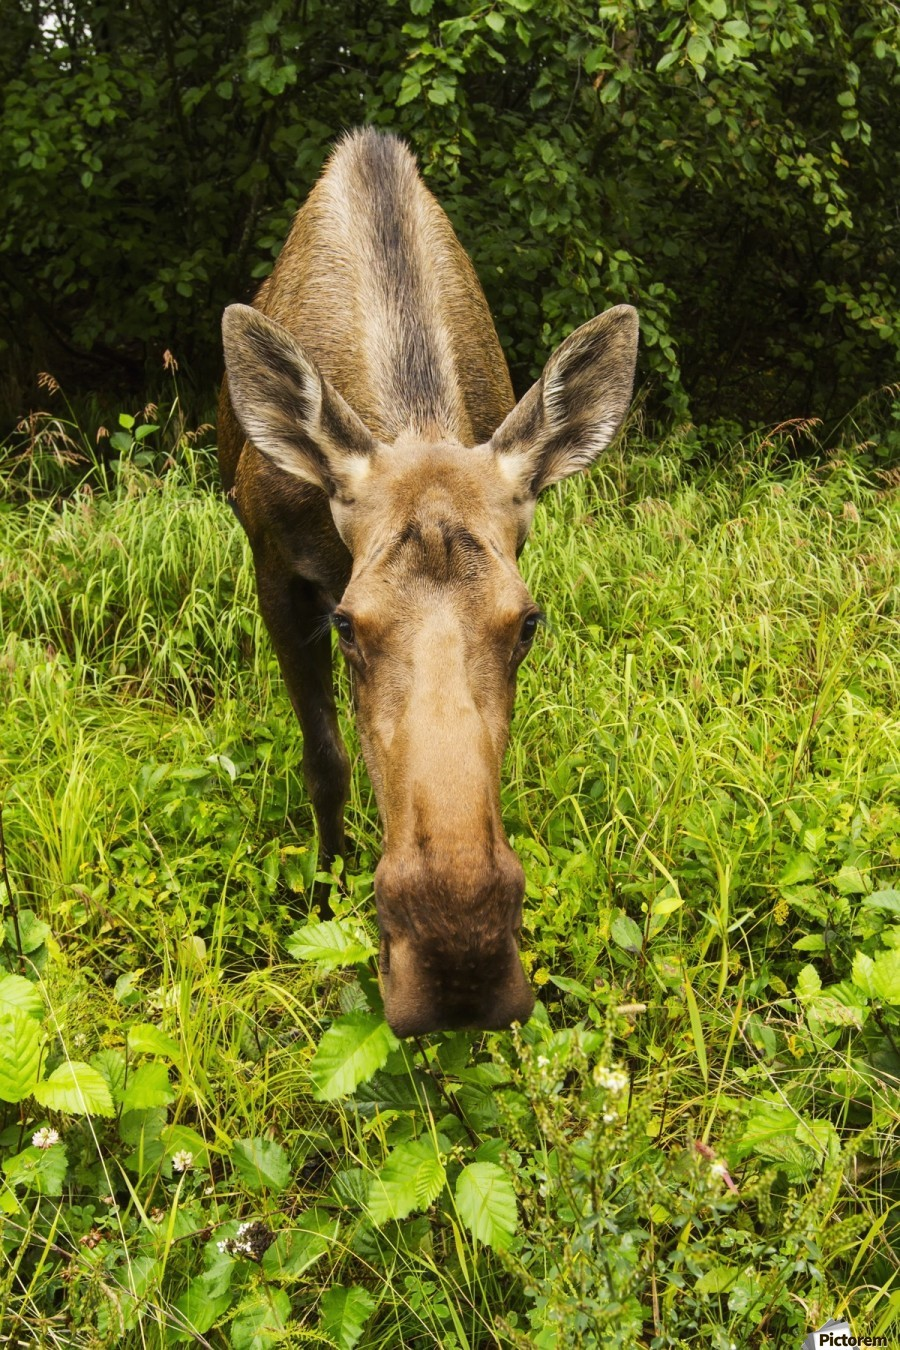 Cow moose (alces alces), close up with a wide angle lense, south-central Alaska; Alaska, United States of America  Print